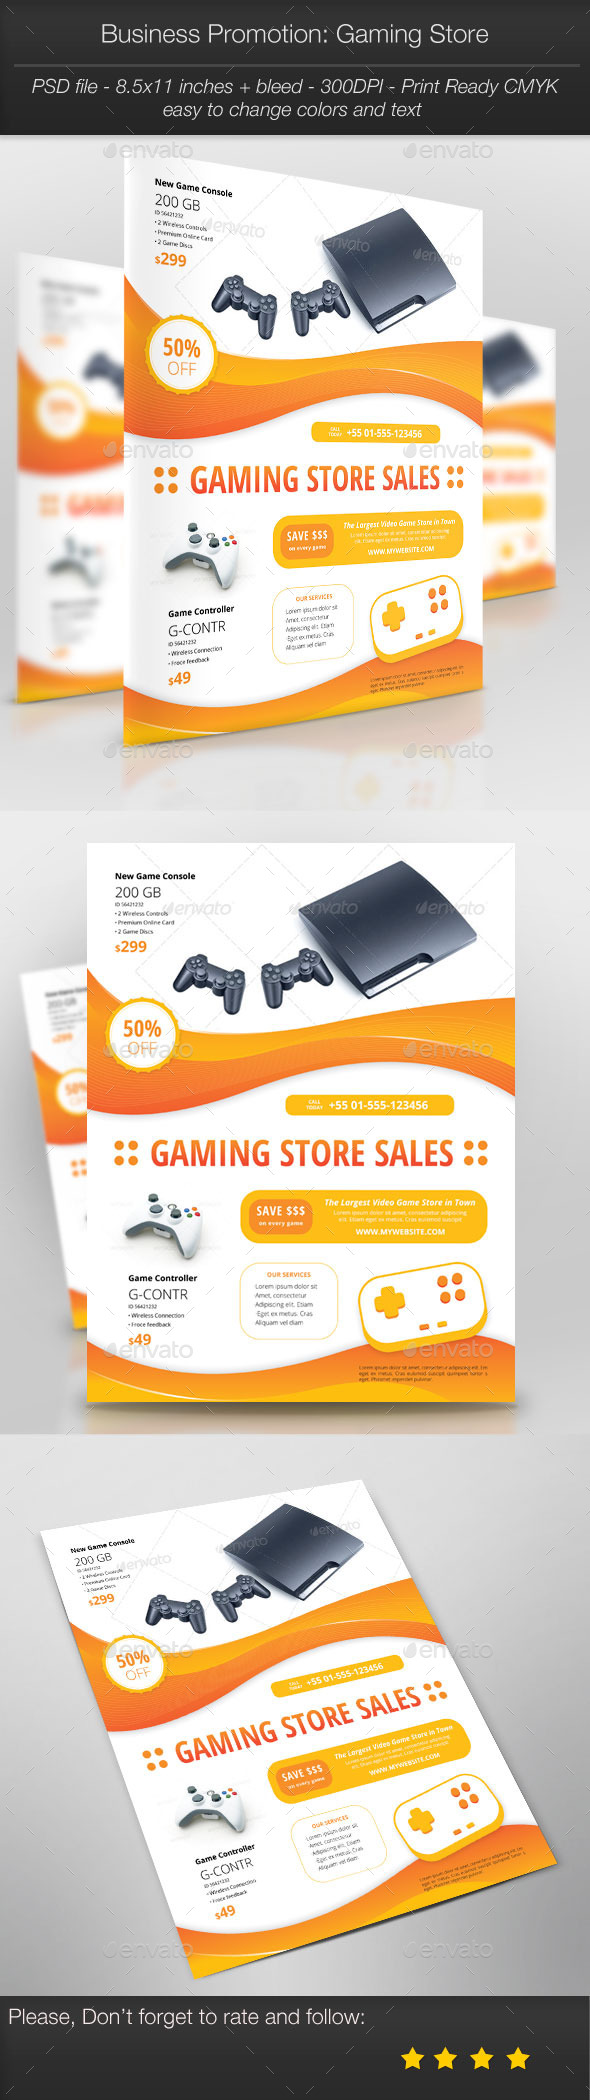 GraphicRiver Business Promotion Gaming Store 11244103